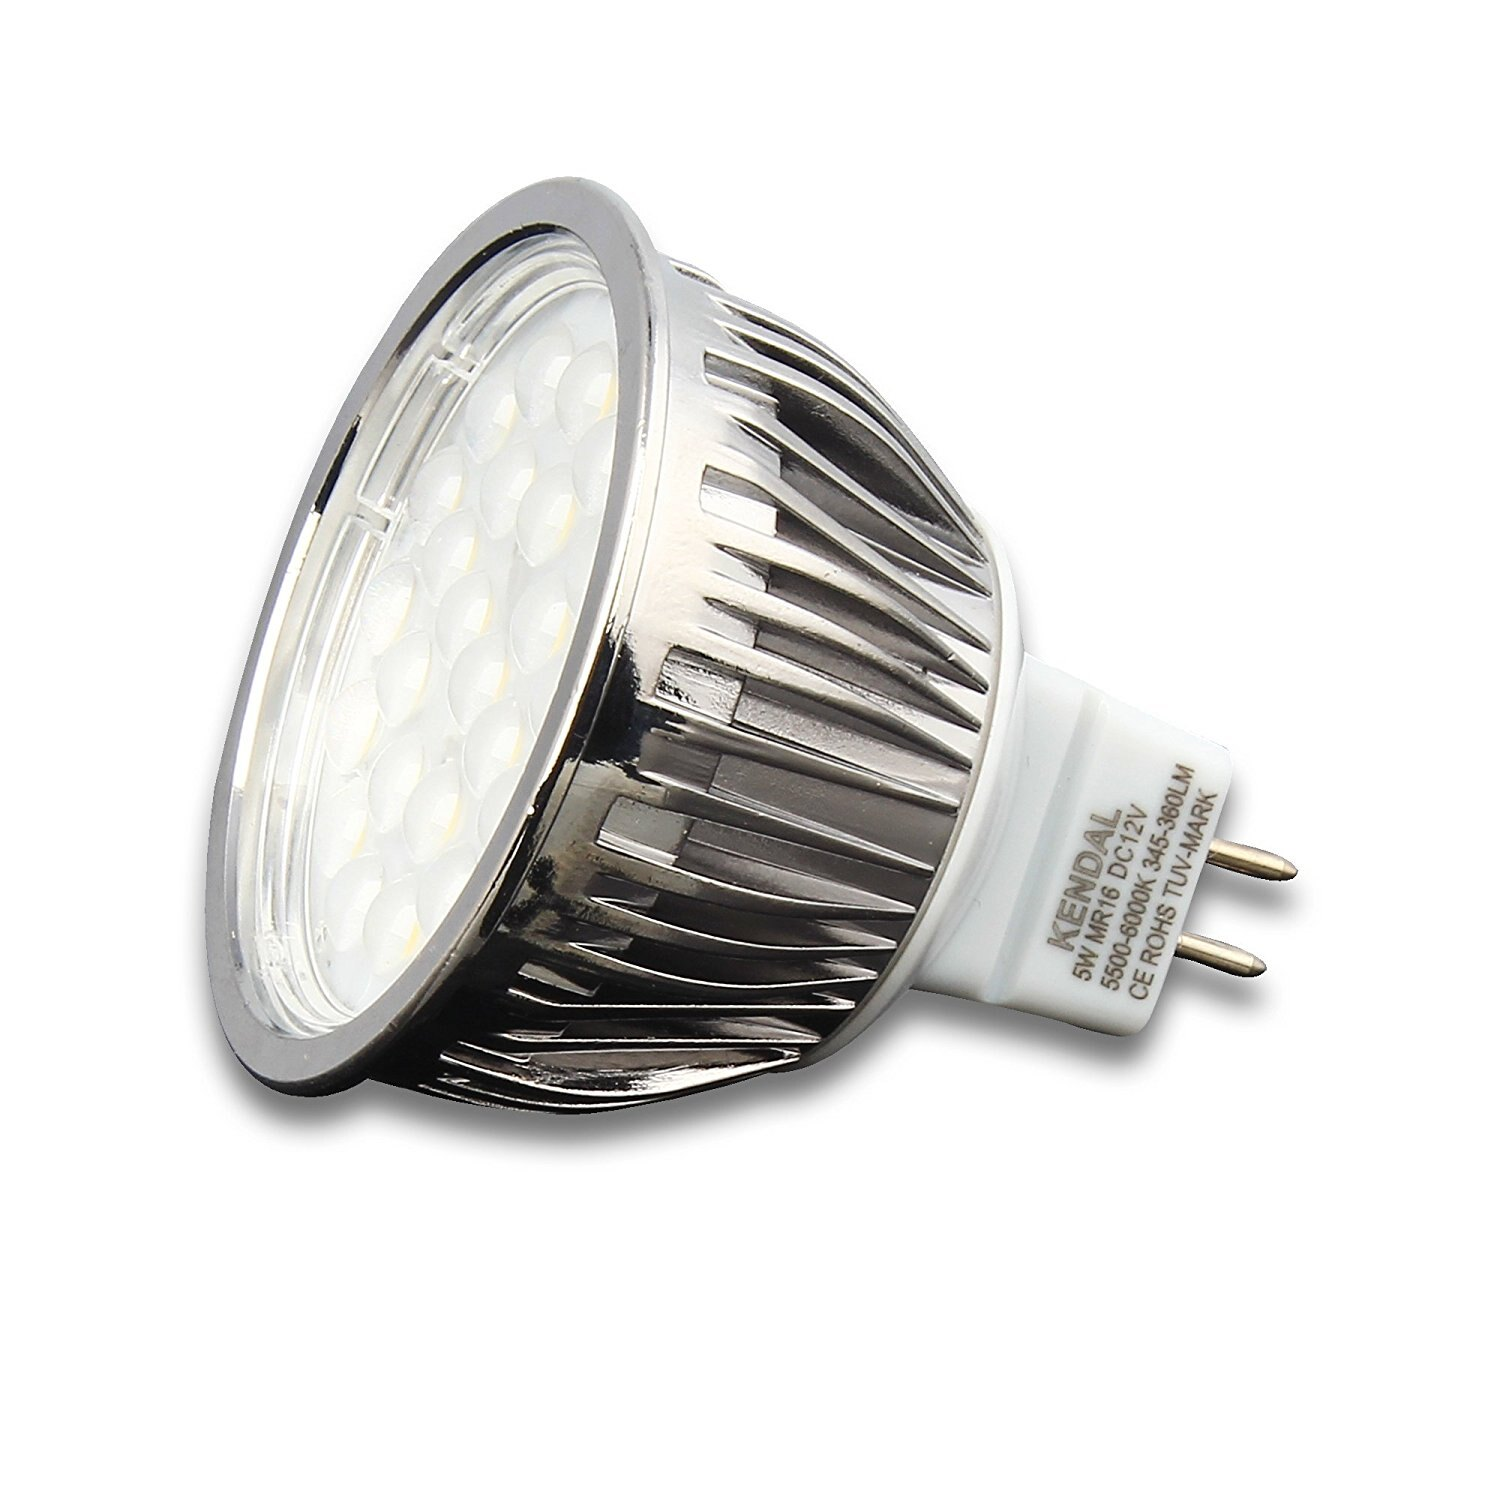 5 Watt Led Kendal Mr16 Led 5 Watt 40 Watt Replacement 5500 6000k Cri90 490lm Led Light Bulb Ul Listed And Fcc Approved Mr16 5w